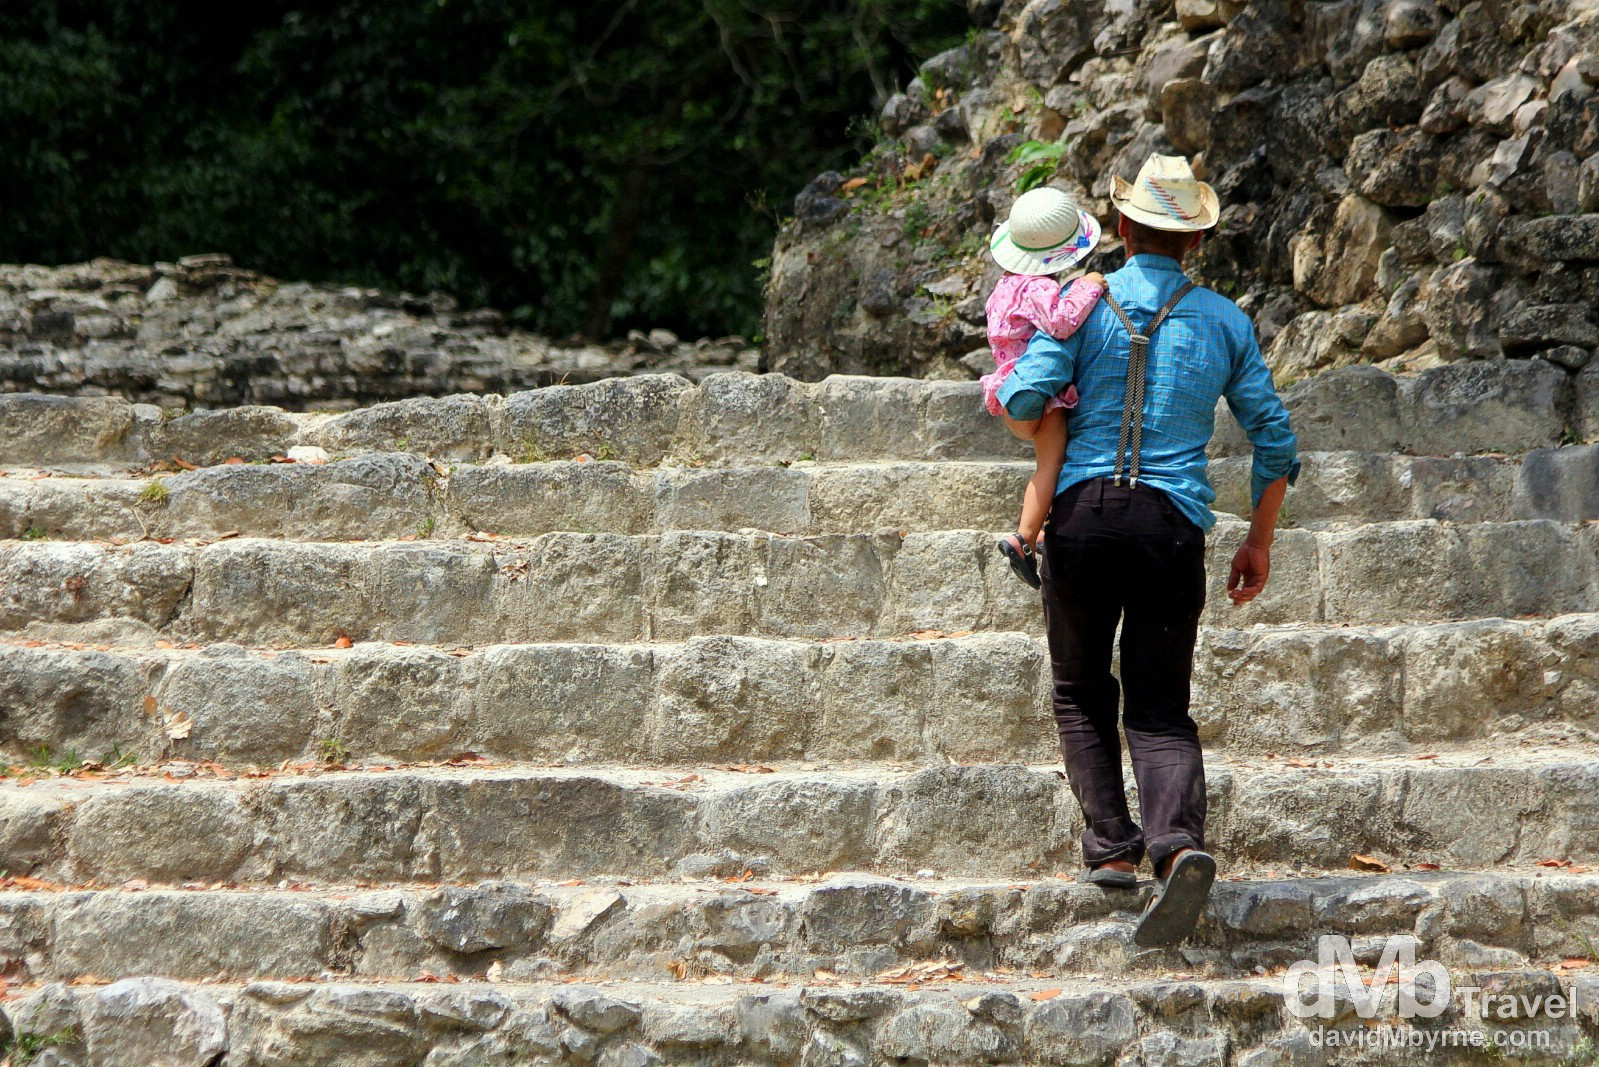 Ascending the steps of the Jaguar Temple at the Lamanai Mayan ruins in Central Belize. May 11th 2013.